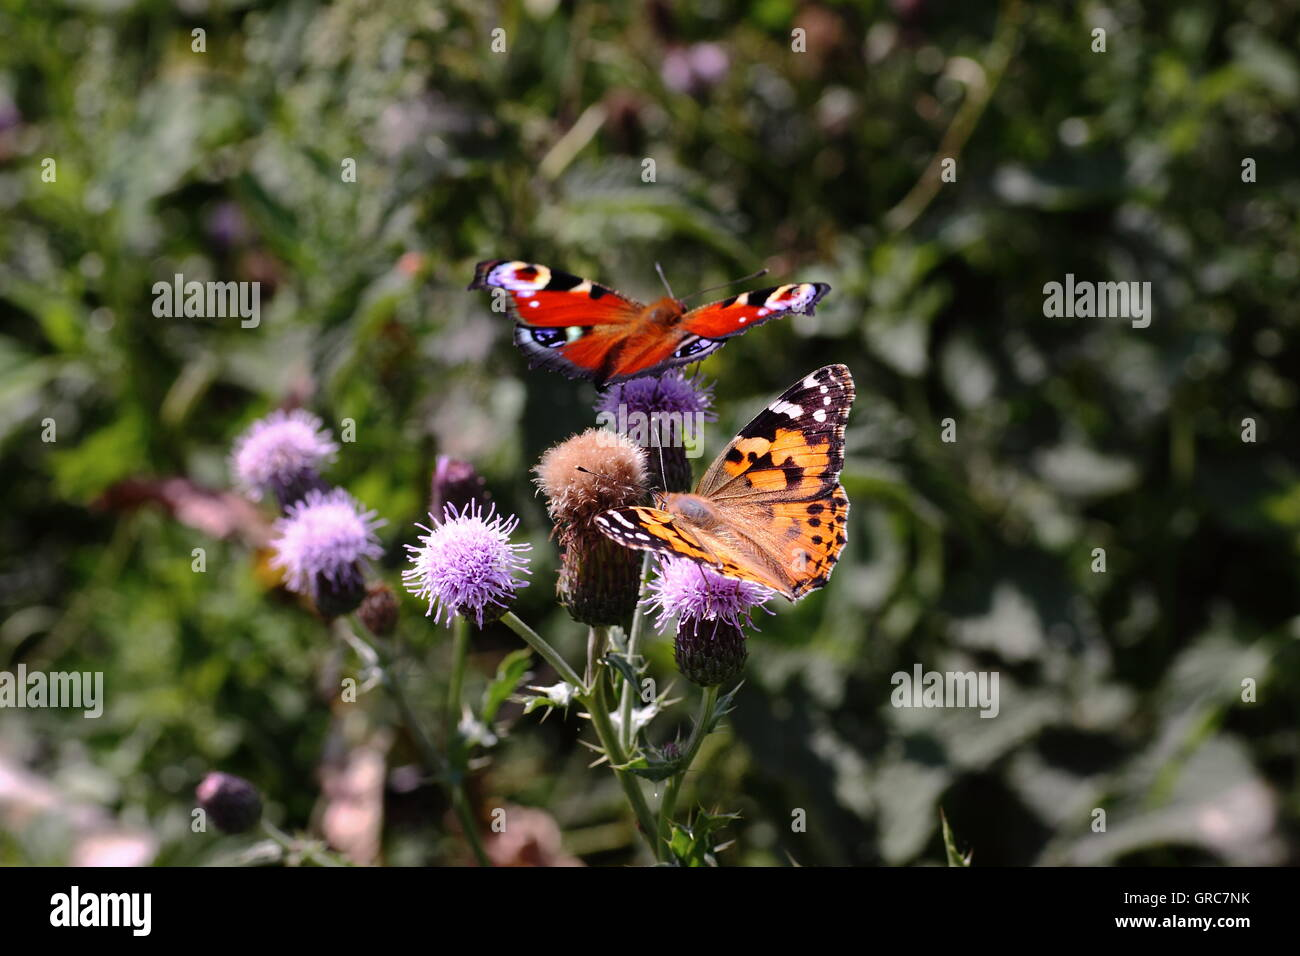 Painted Lady And Peacock Butterfly - Stock Image